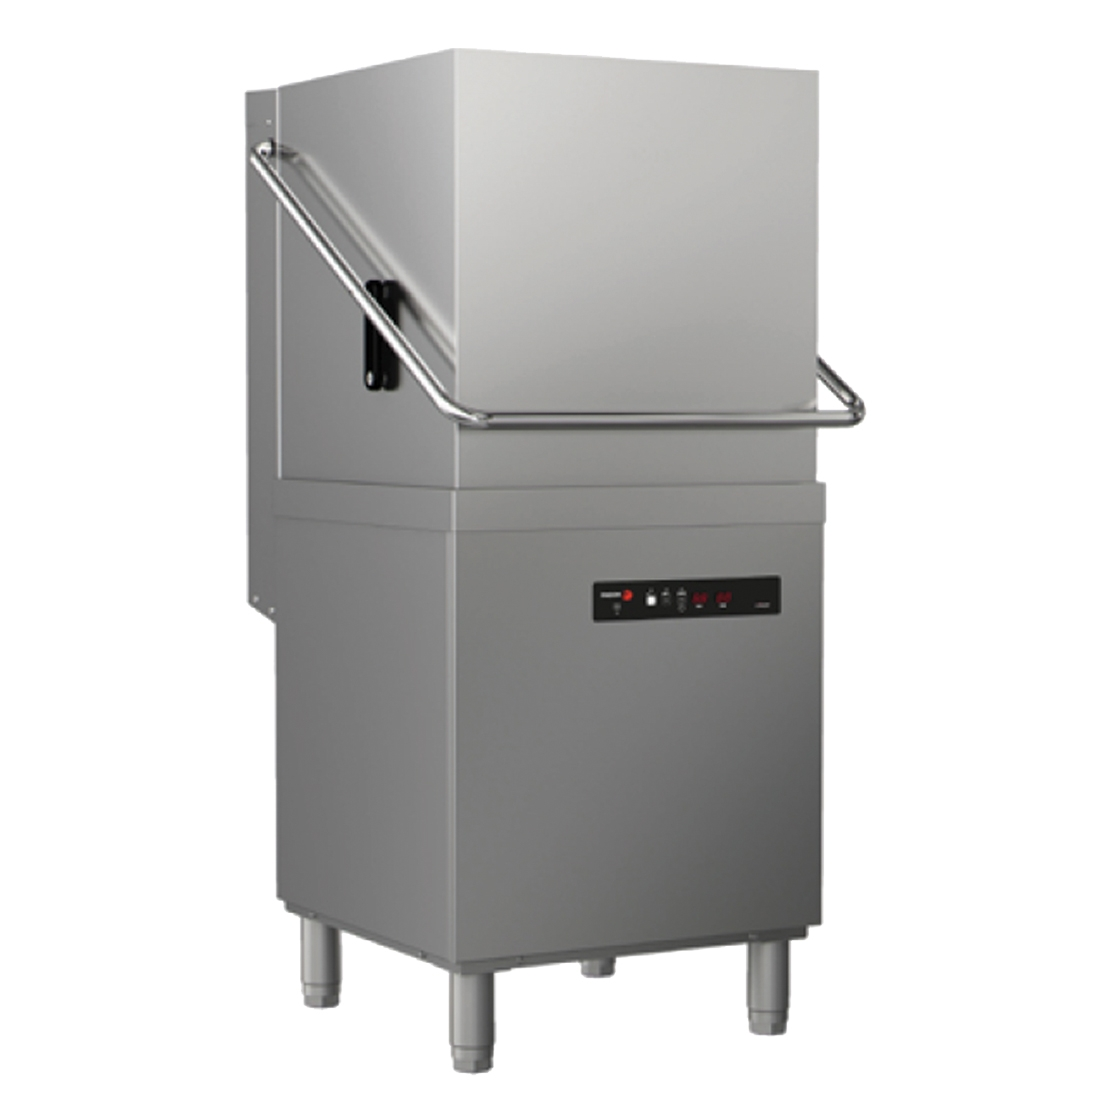 EVO-CONCEPT Pass-through Dishwasher - CO-142BDD